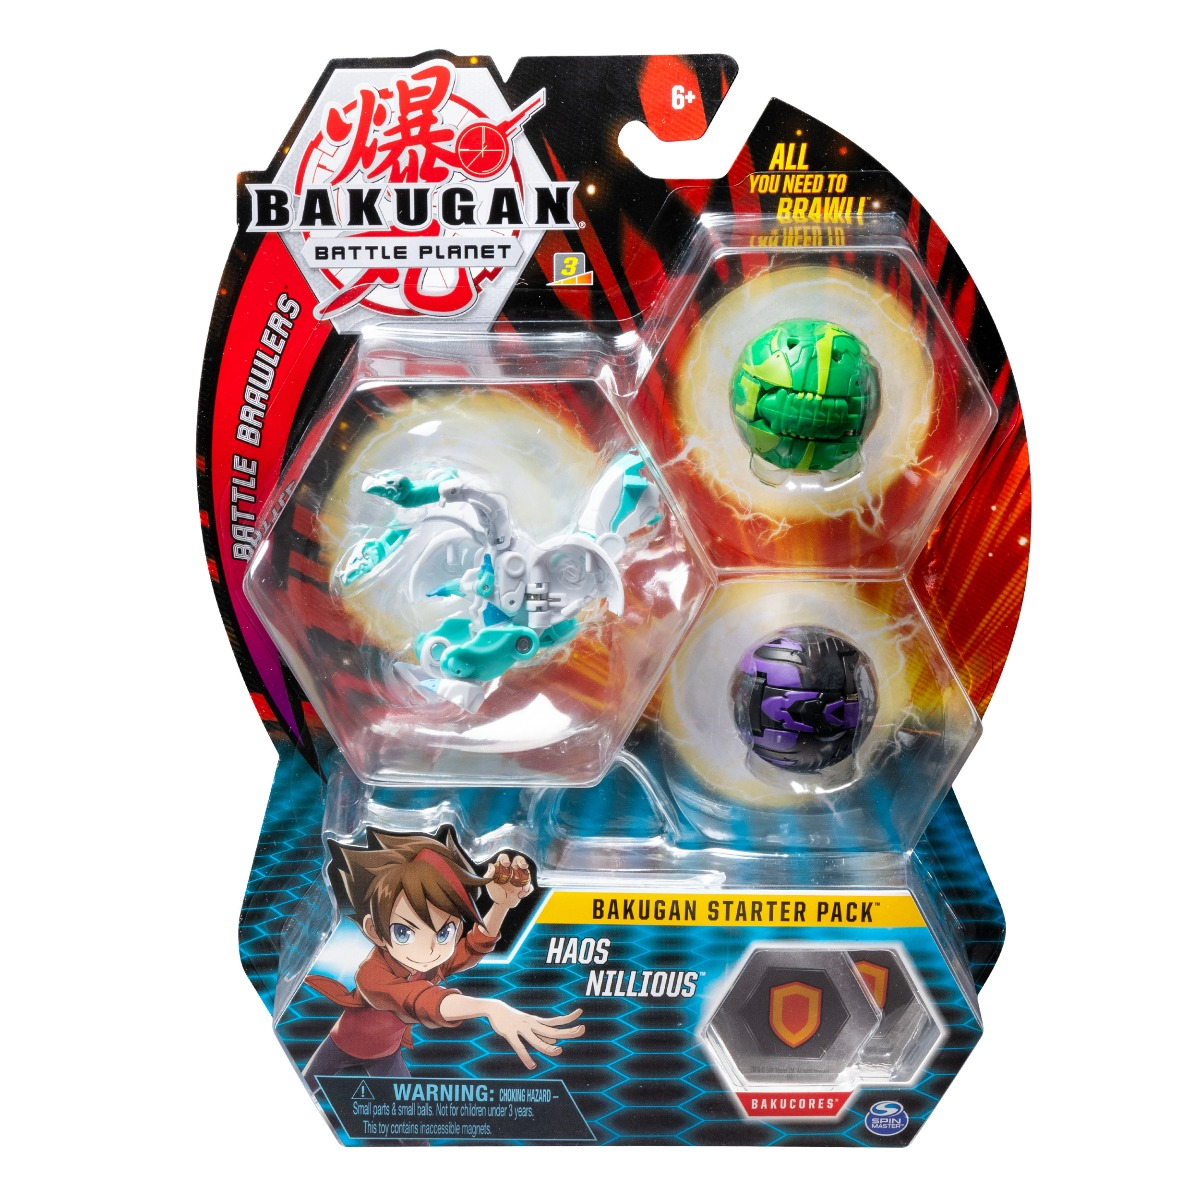 Set Bakugan Battle Planet Starter Haos Nillious, 20108791